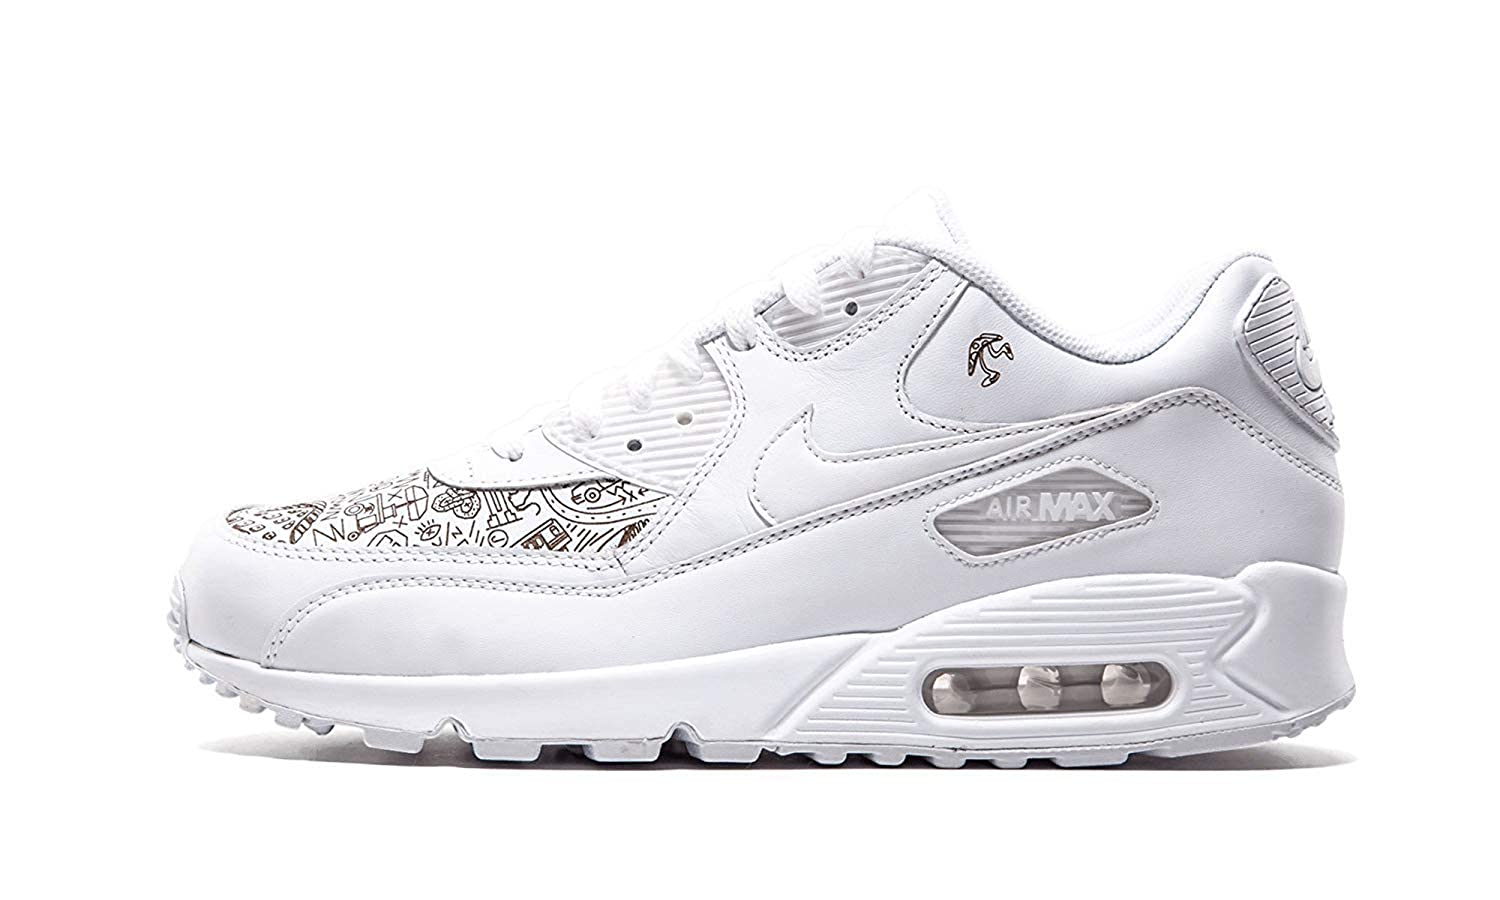 low priced f5c7b 48df1 Amazon.com  Nike Air Max 90 Laser - 032616 212  Shoes